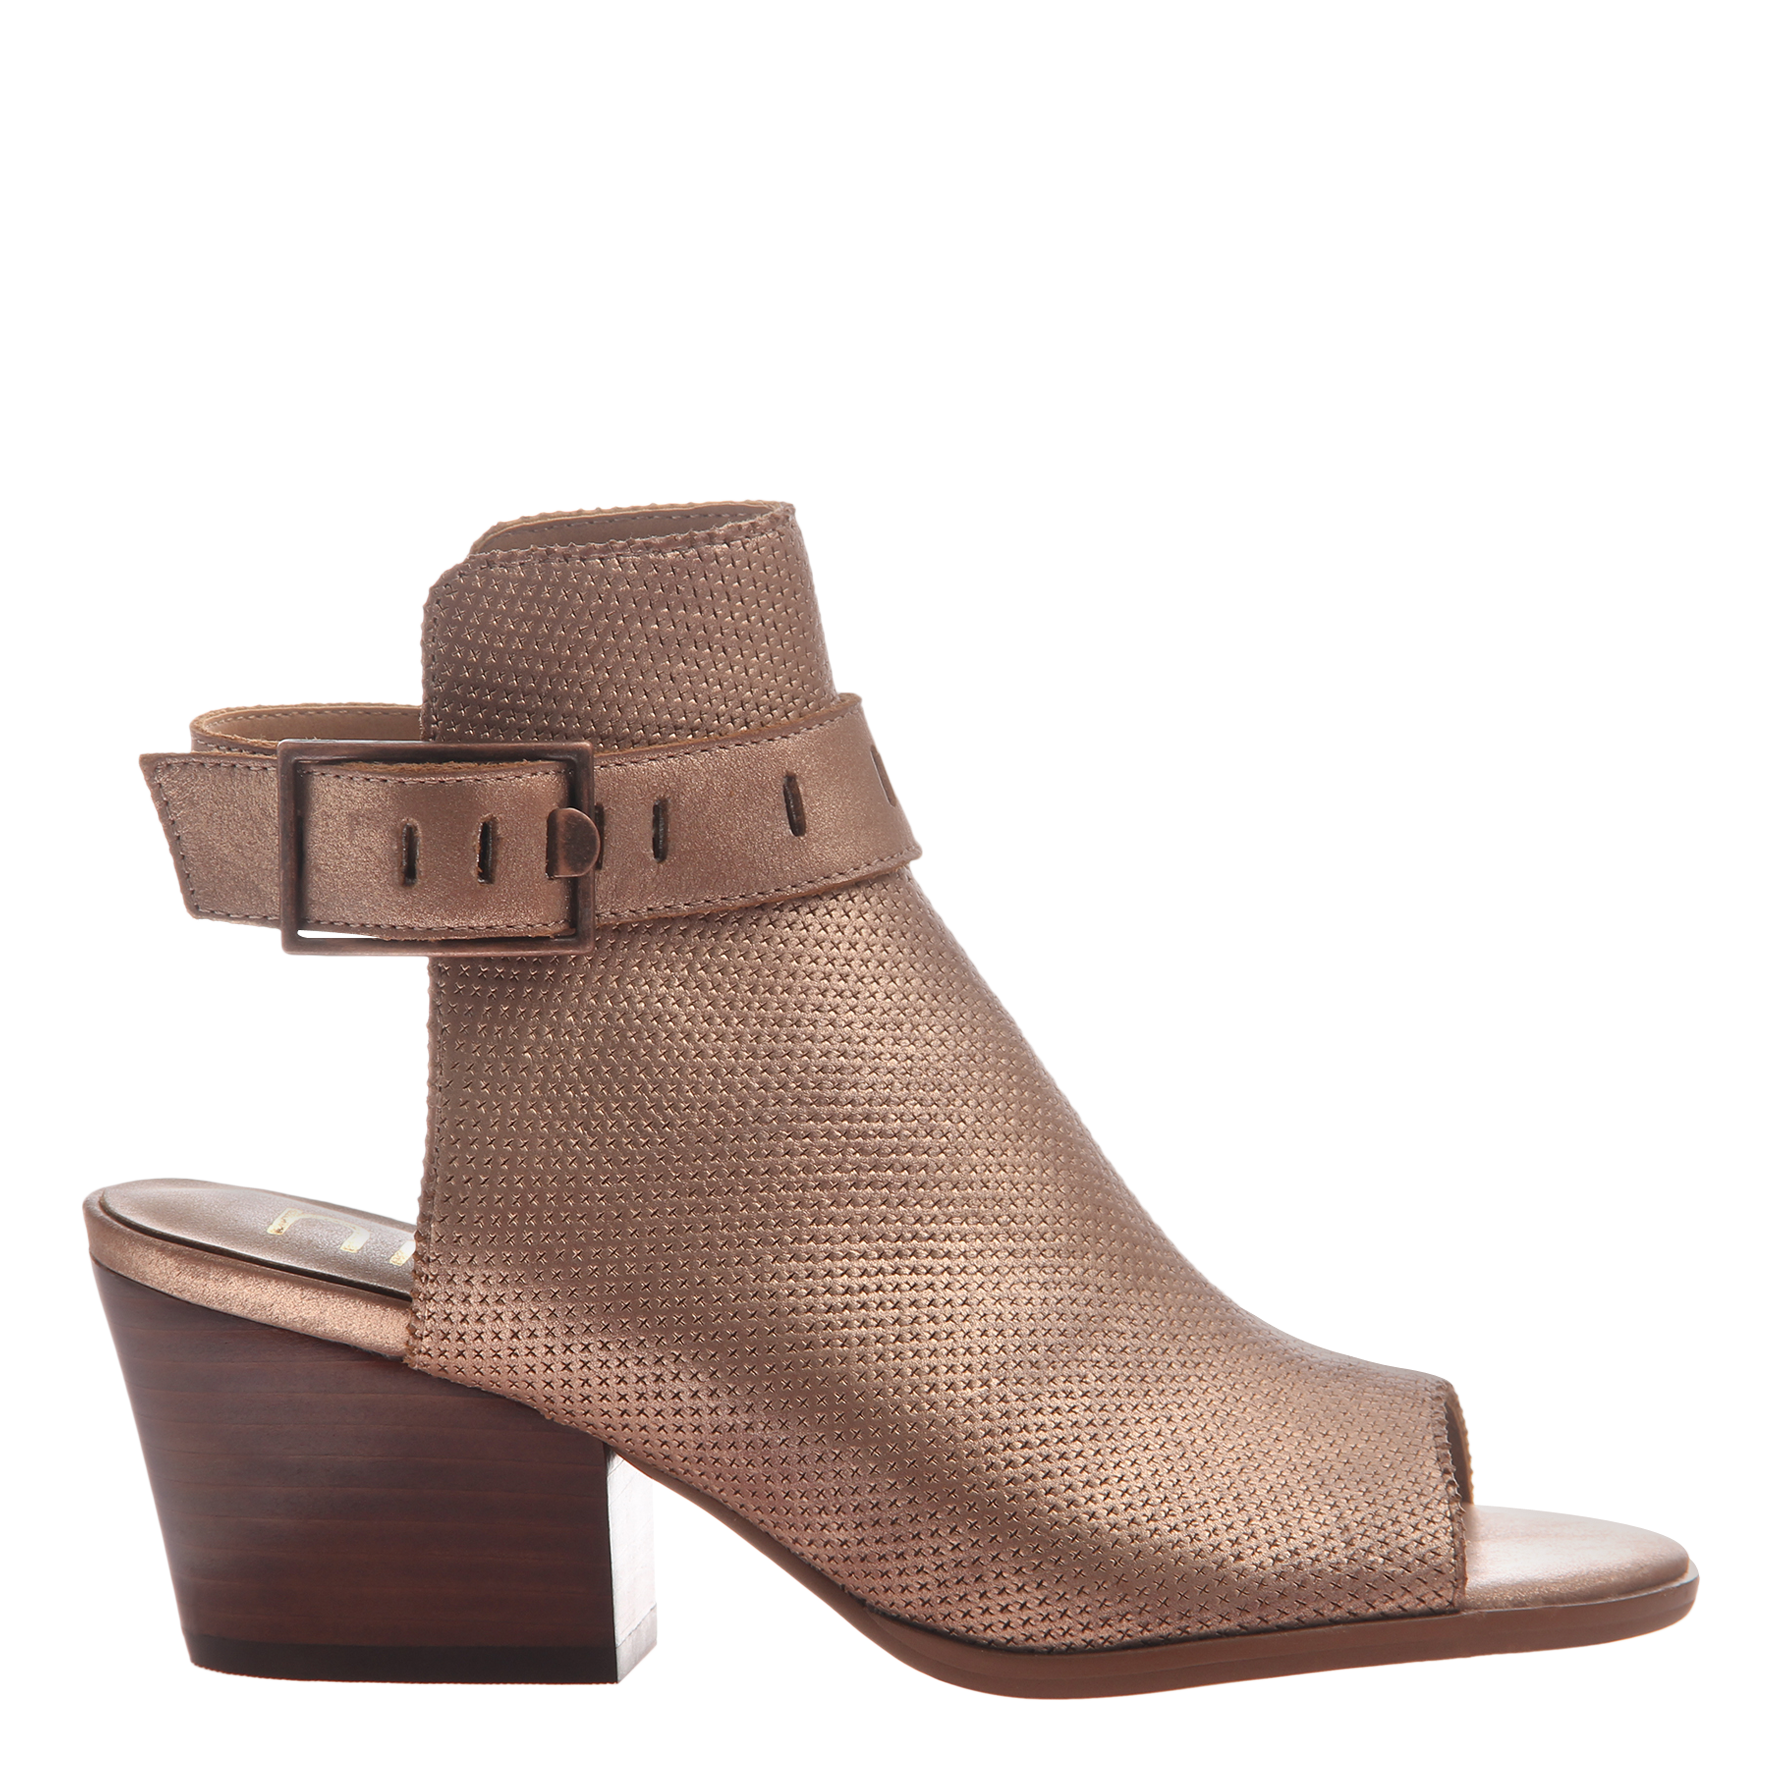 Women's heeled shootie Talullah in copper side view